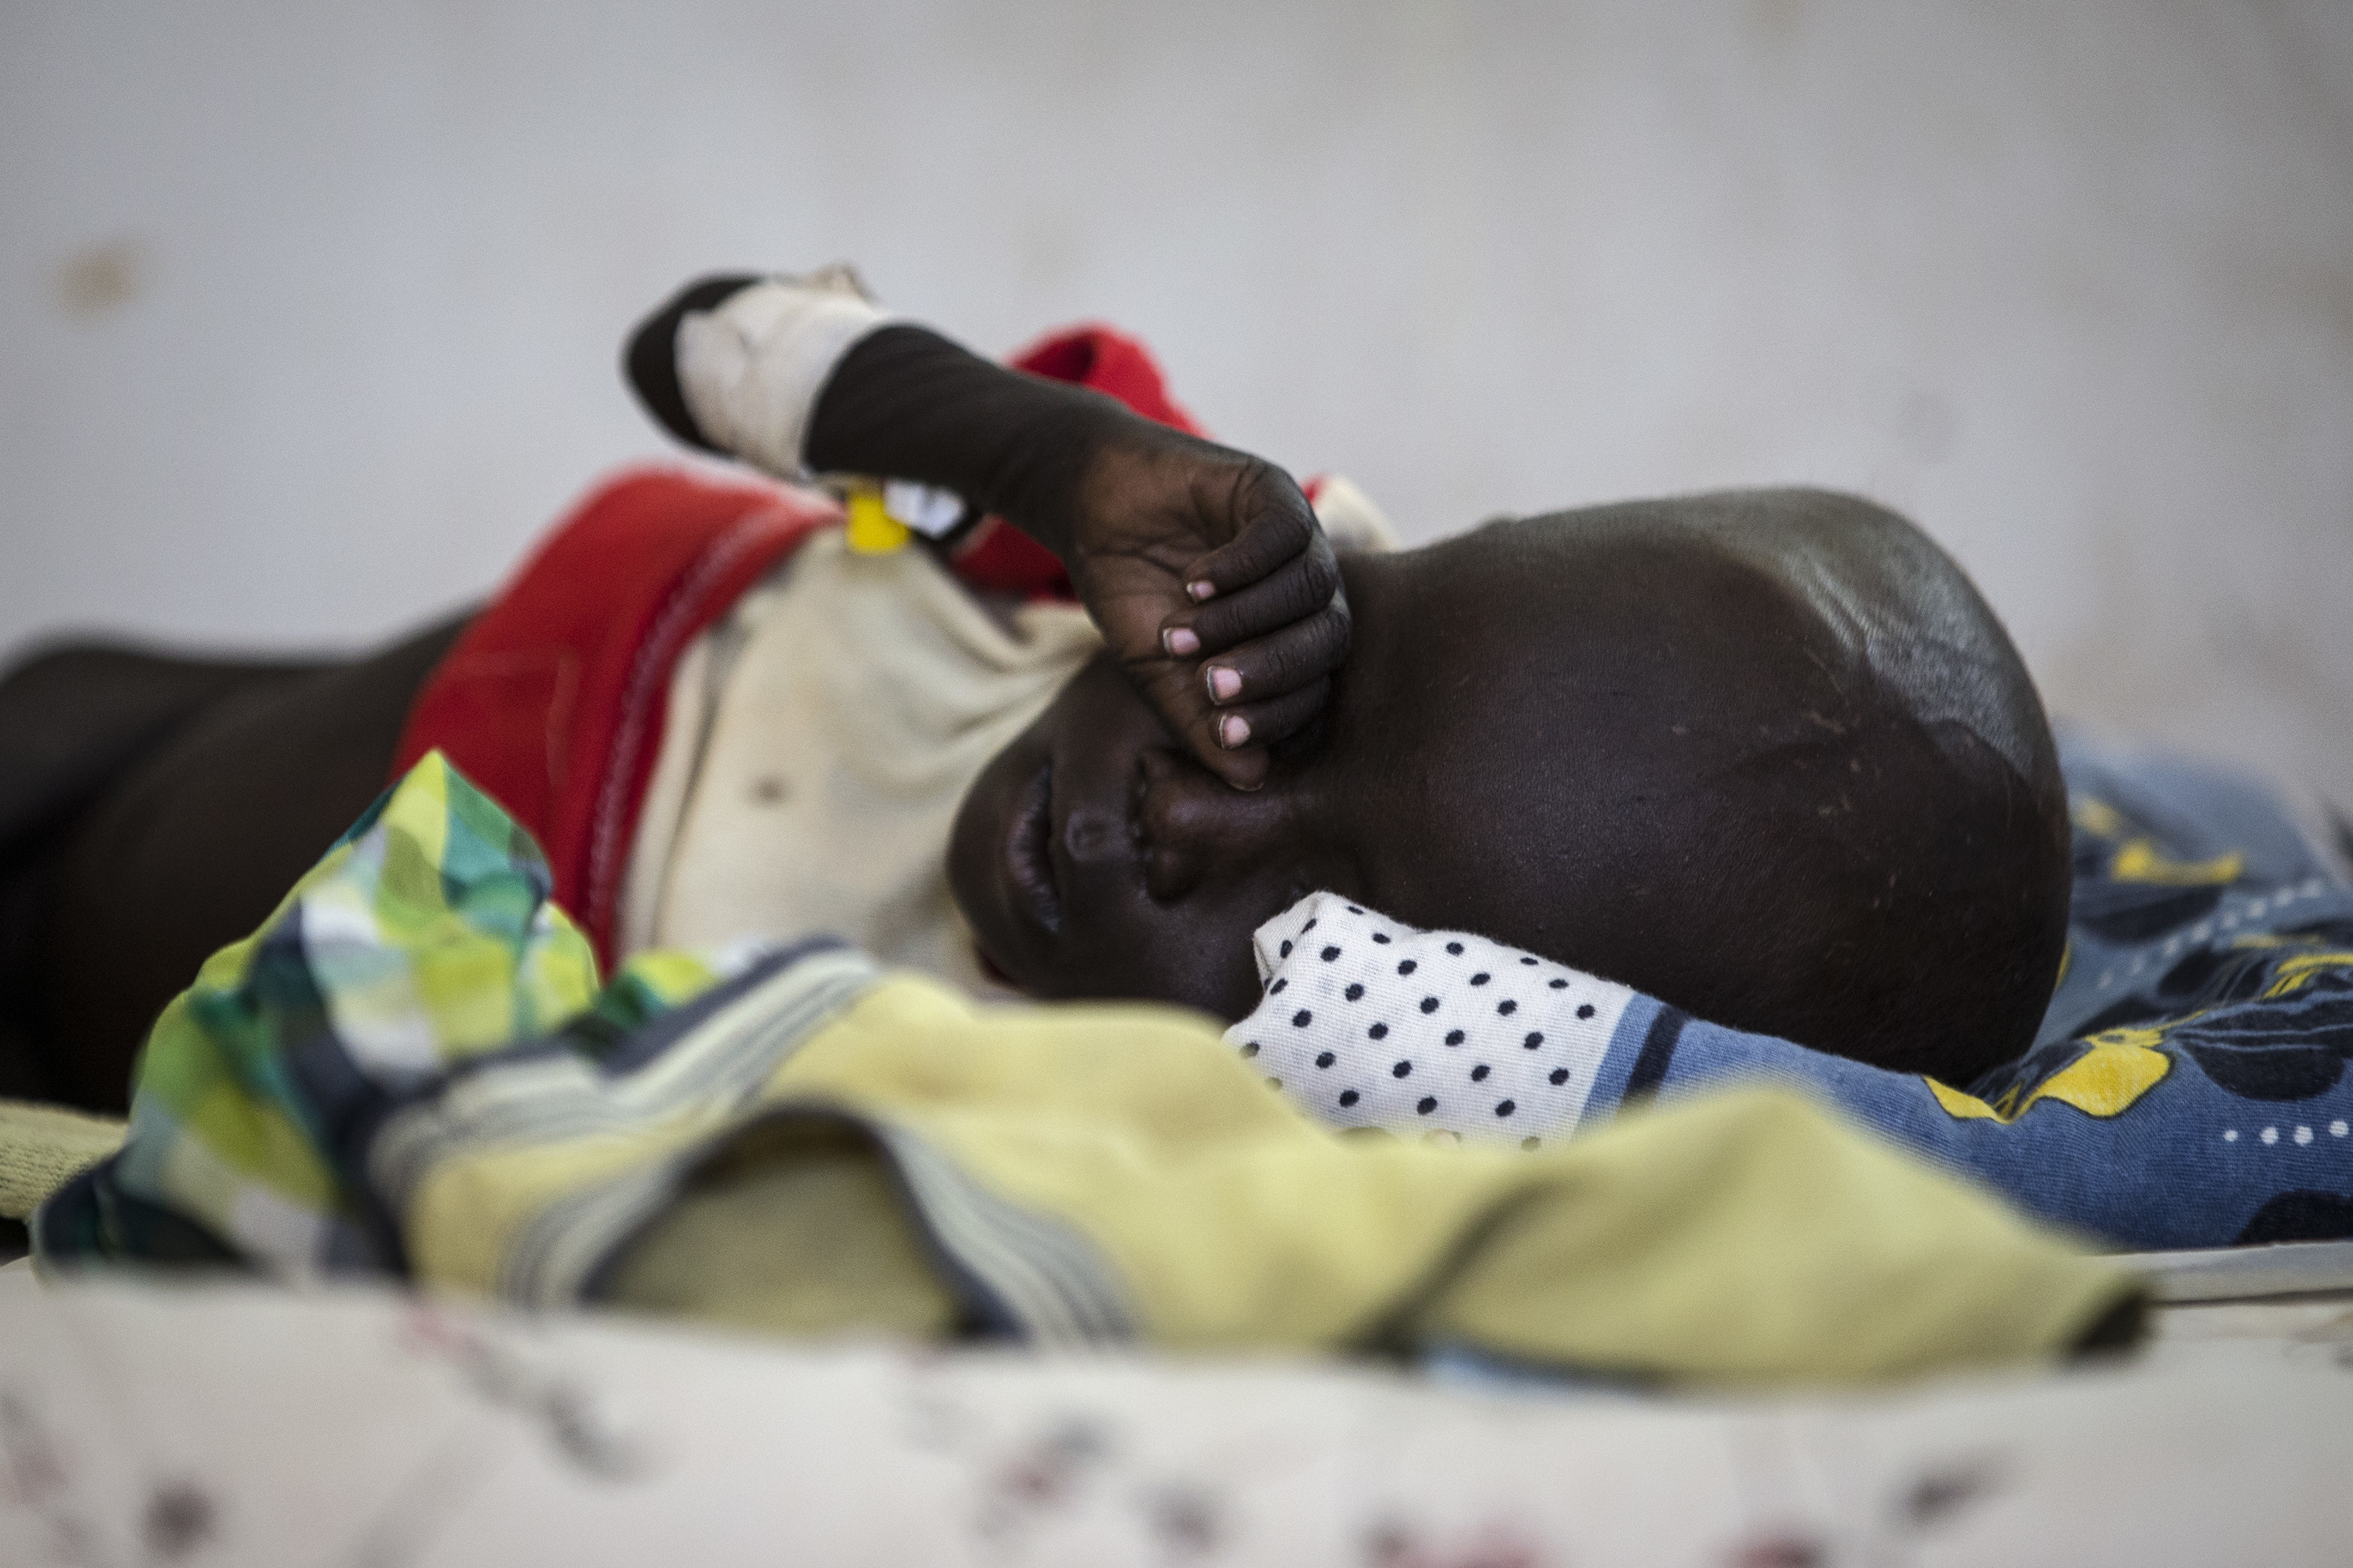 A sick child lies in a bed in a UNICEF supported hospital in Juba, South Sudan, January 24, 2017. In 2017 in South Sudan, ongoing insecurity, combined with an economic crisis that has pushed inflation above 800 percent, has created widespread food insecurity with malnutrition among children having reached emergency levels in most parts of the country. In 2016, UNICEF and partners admitted 184,000 children for treatment of severe malnutrition. That is 50 percent higher than the number treated in 2015 and an increase of 135 percent over 2014.In February 2017, war and a collapsing economy have left some 100,000 people facing starvation in parts of South Sudan where famine was declared 20 February, three UN agencies warned. A further 1 million people are classified as being on the brink of famine. The Food and Agriculture Organization of the United Nations (FAO), the United Nations Children's Fund (UNICEF) and the World Food Programme (WFP) also warned that urgent action is needed to prevent more people from dying of hunger. If sustained and adequate assistance is delivered urgently, the hunger situation can be improved in the coming months and further suffering mitigated. The total number of food insecure people is expected to rise to 5.5 million at the height of the lean season in July if nothing is done to curb the severity and spread of the food crisis. According to the Integrated Food Security Phase Classification (IPC) update released 20 February by the government, the three agencies and other humanitarian partners, 4.9 million people – more than 40 percent of South Sudan's population – are in need of urgent food, agriculture and nutrition assistance. Unimpeded humanitarian access to everyone facing famine, or at risk of famine, is urgently needed to reverse the escalating catastrophe, the UN agencies urged. Further spread of famine can only be prevented if humanitarian assistance is scaled up and reaches the most vulnerable. Famine is currently a